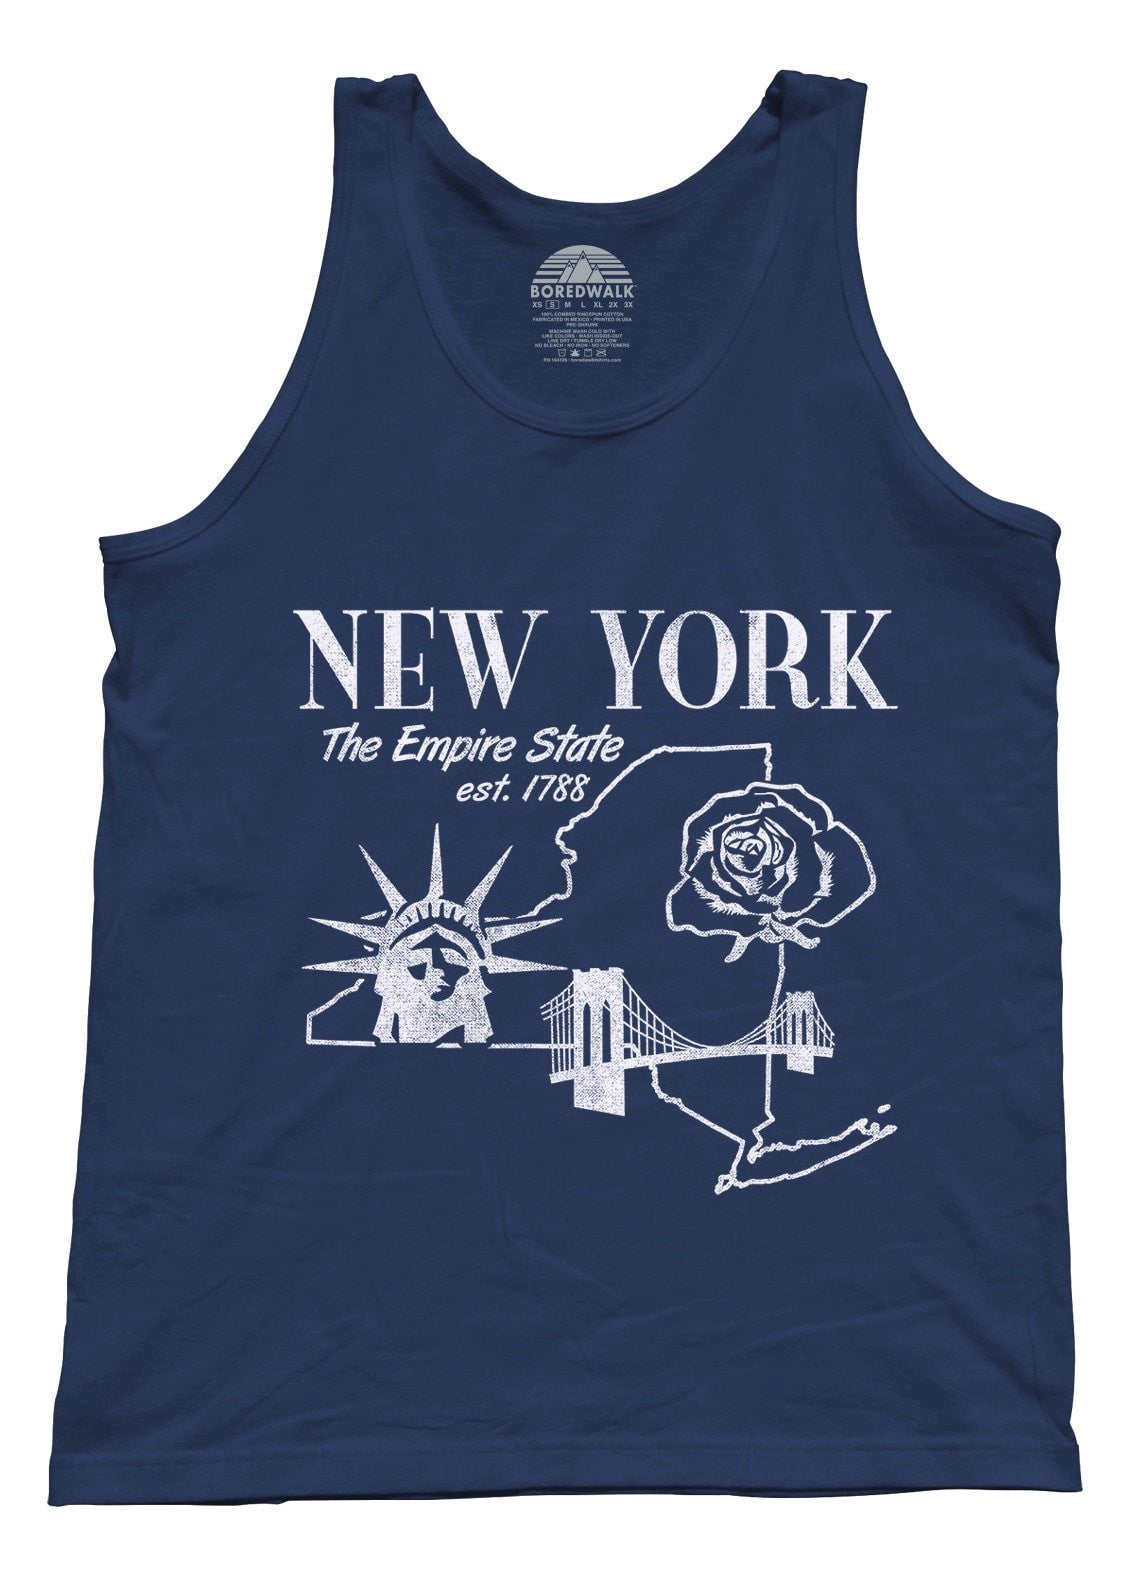 Unisex Retro New York Tank Top Vintage State Pride